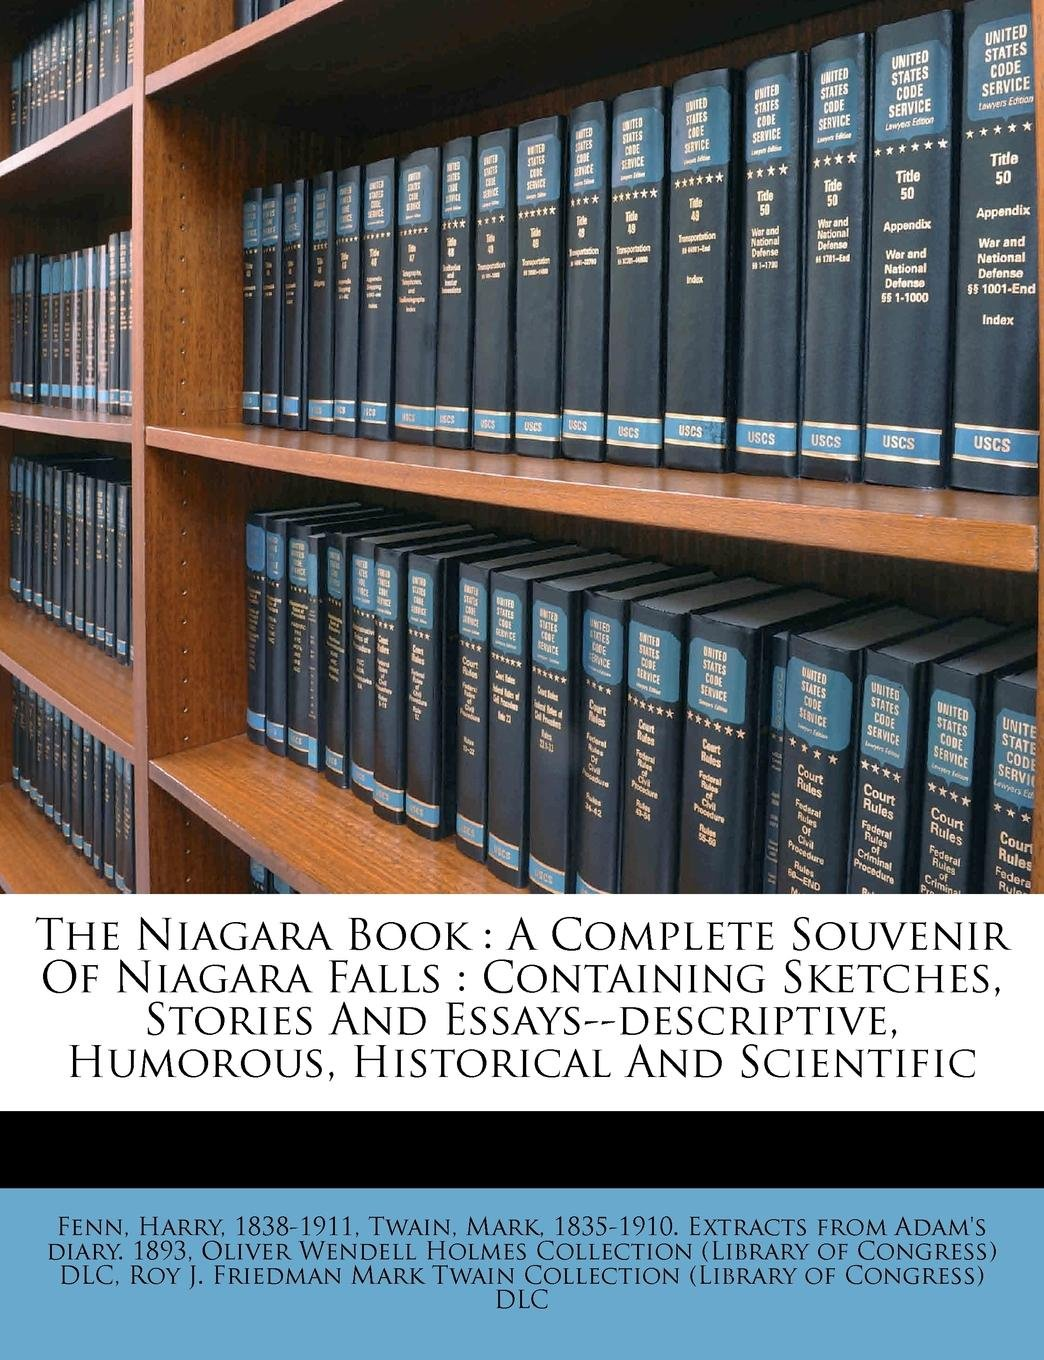 Download The Niagara Book: A Complete Souvenir Of Niagara Falls : Containing Sketches, Stories And Essays-descriptive, Humorous, Historical And Scientific PDF